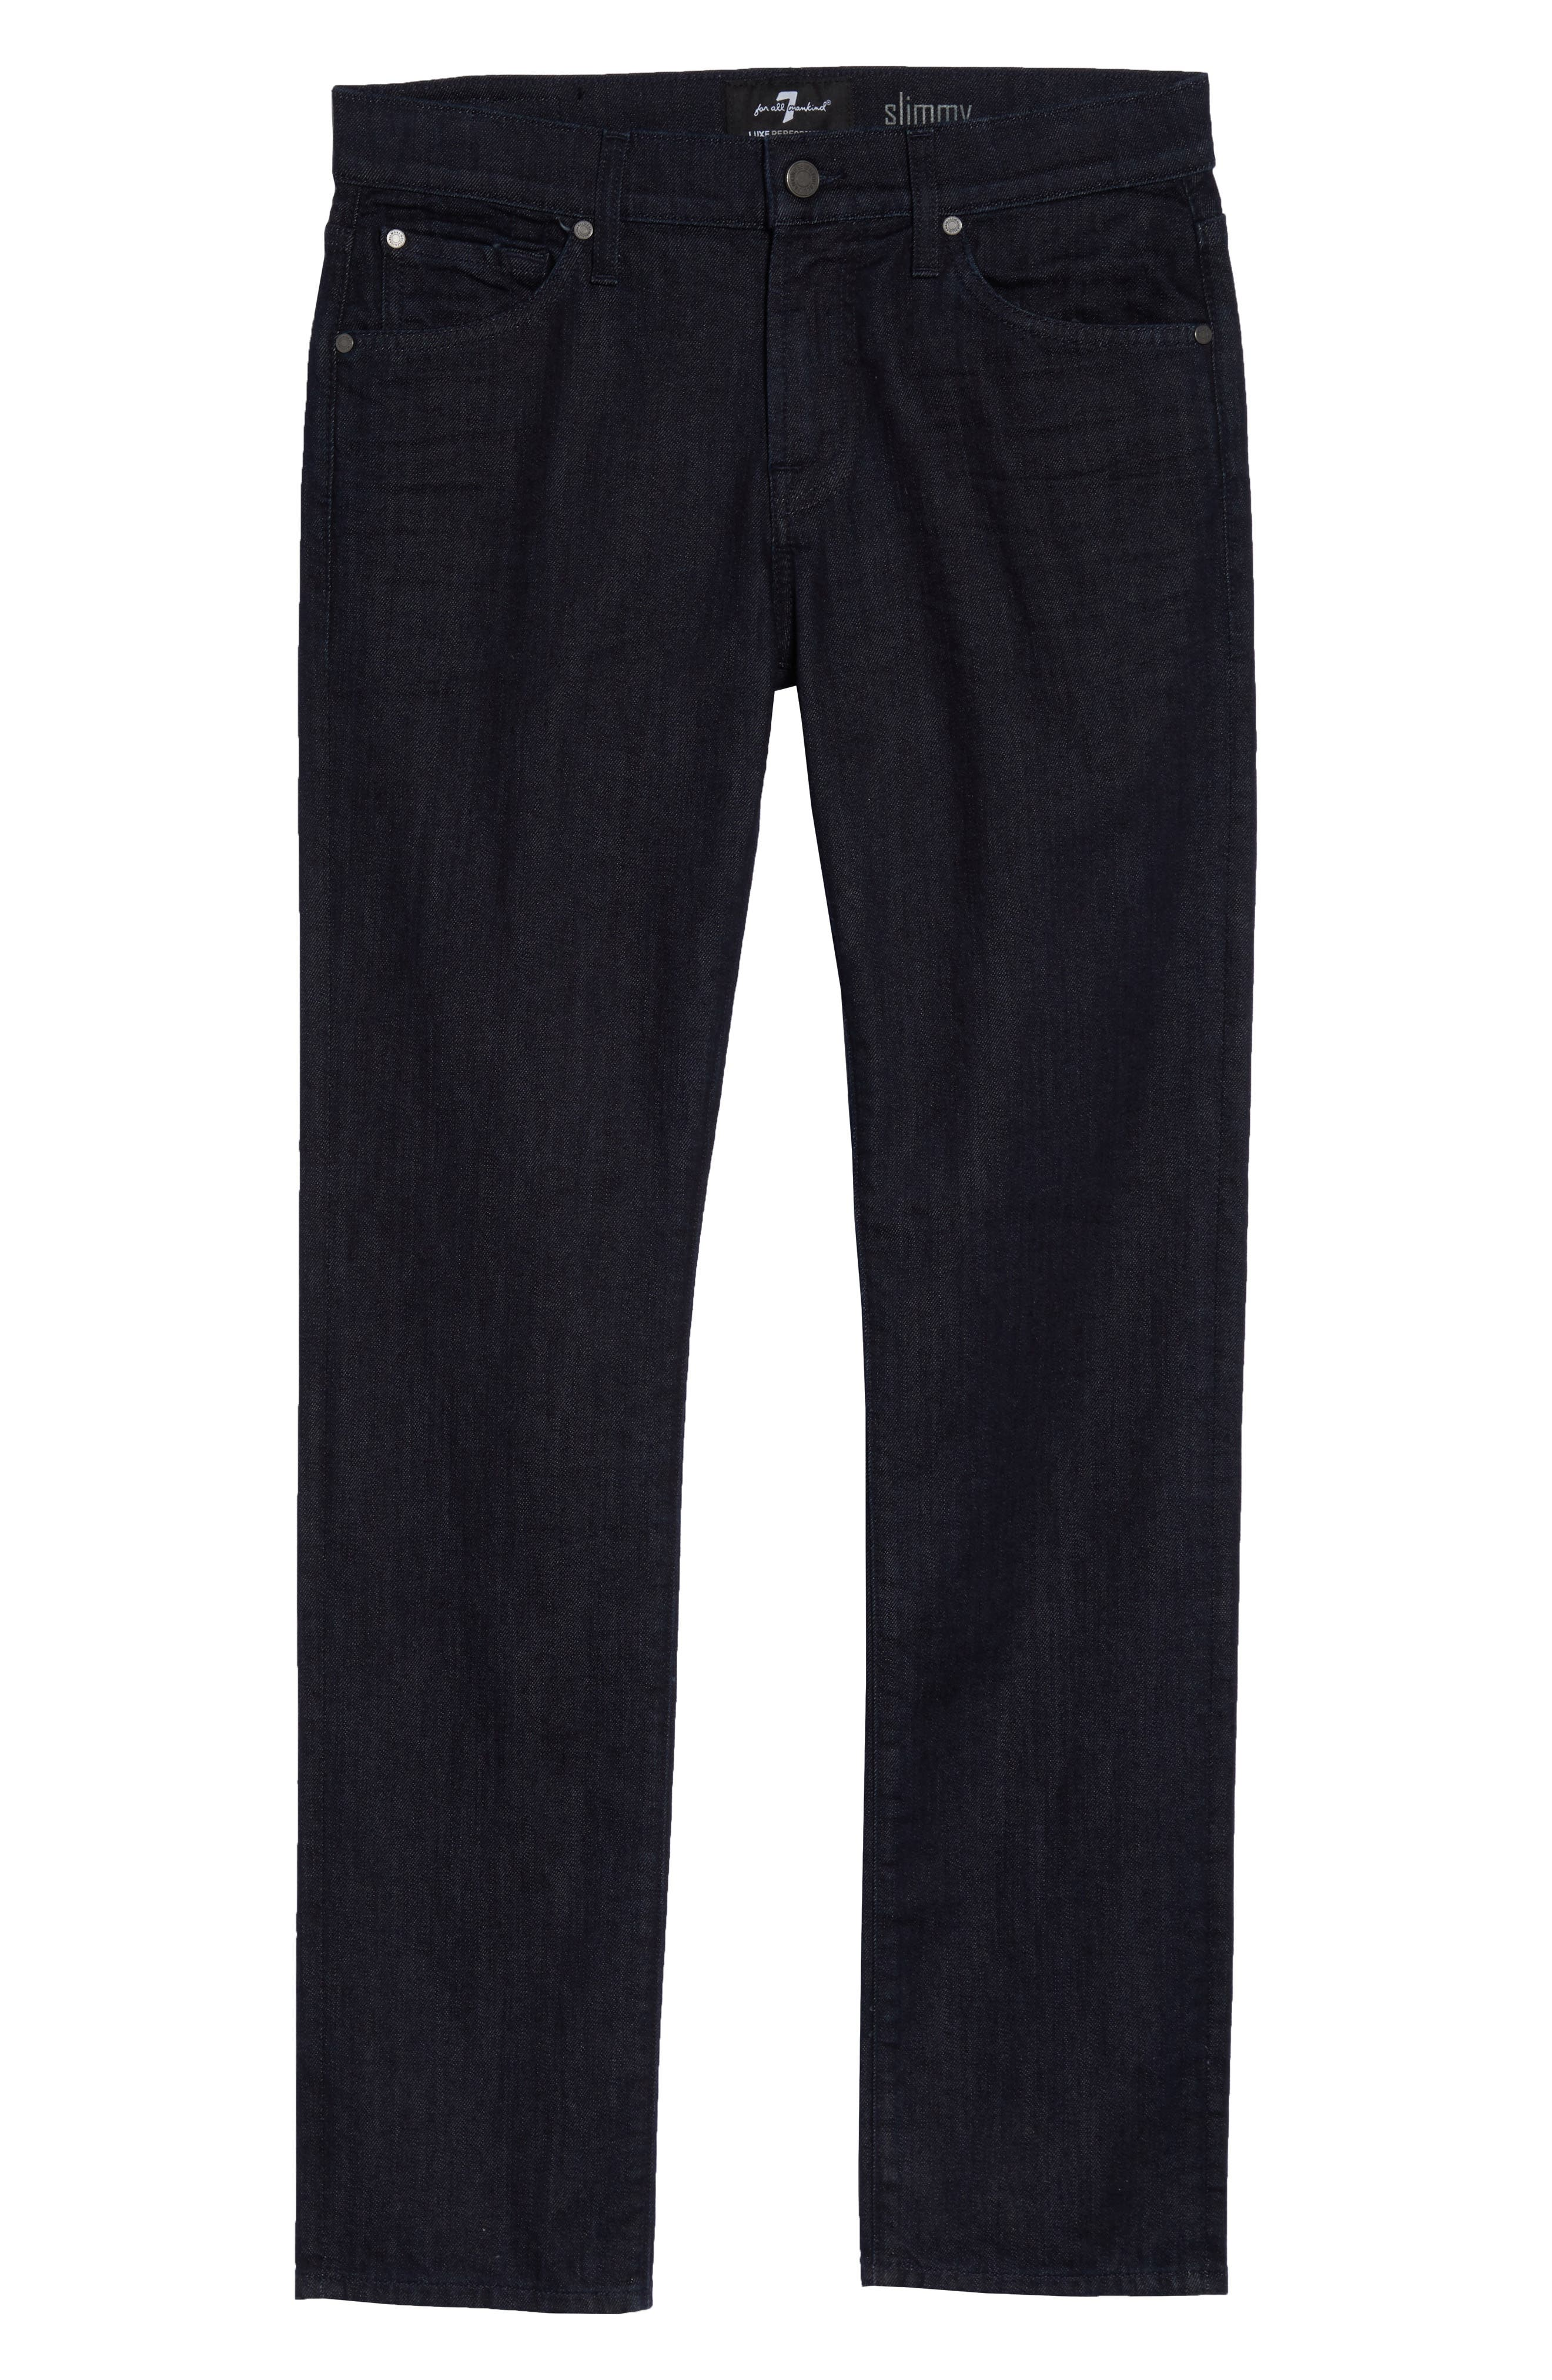 7 FOR ALL MANKIND<SUP>®</SUP>,                             'Slimmy - Luxe Performance' Slim Fit Jeans,                             Alternate thumbnail 2, color,                             400